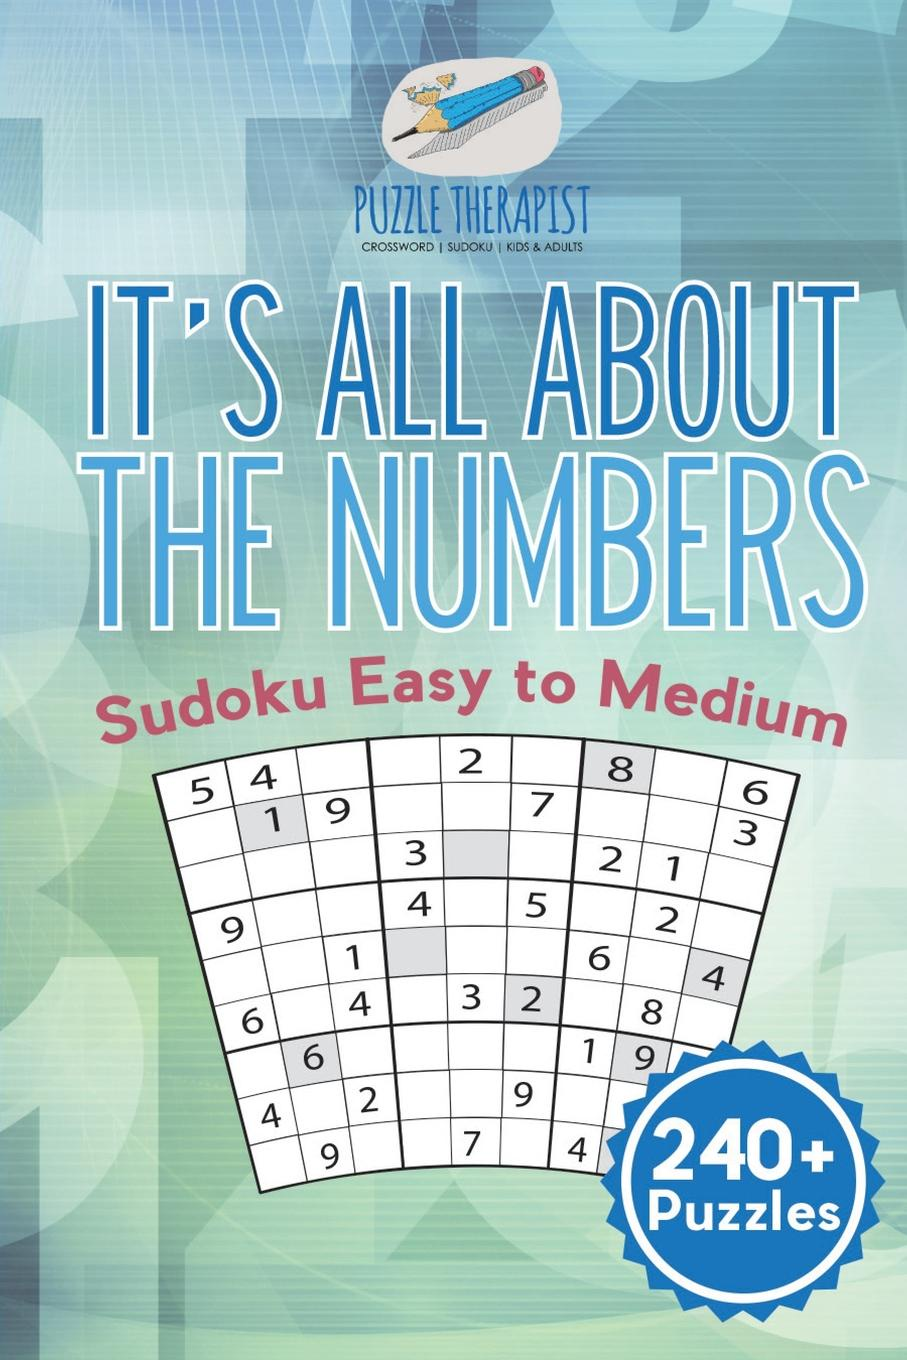 It's All About the Numbers . Sudoku Easy to Medium (240+ Puzzles)